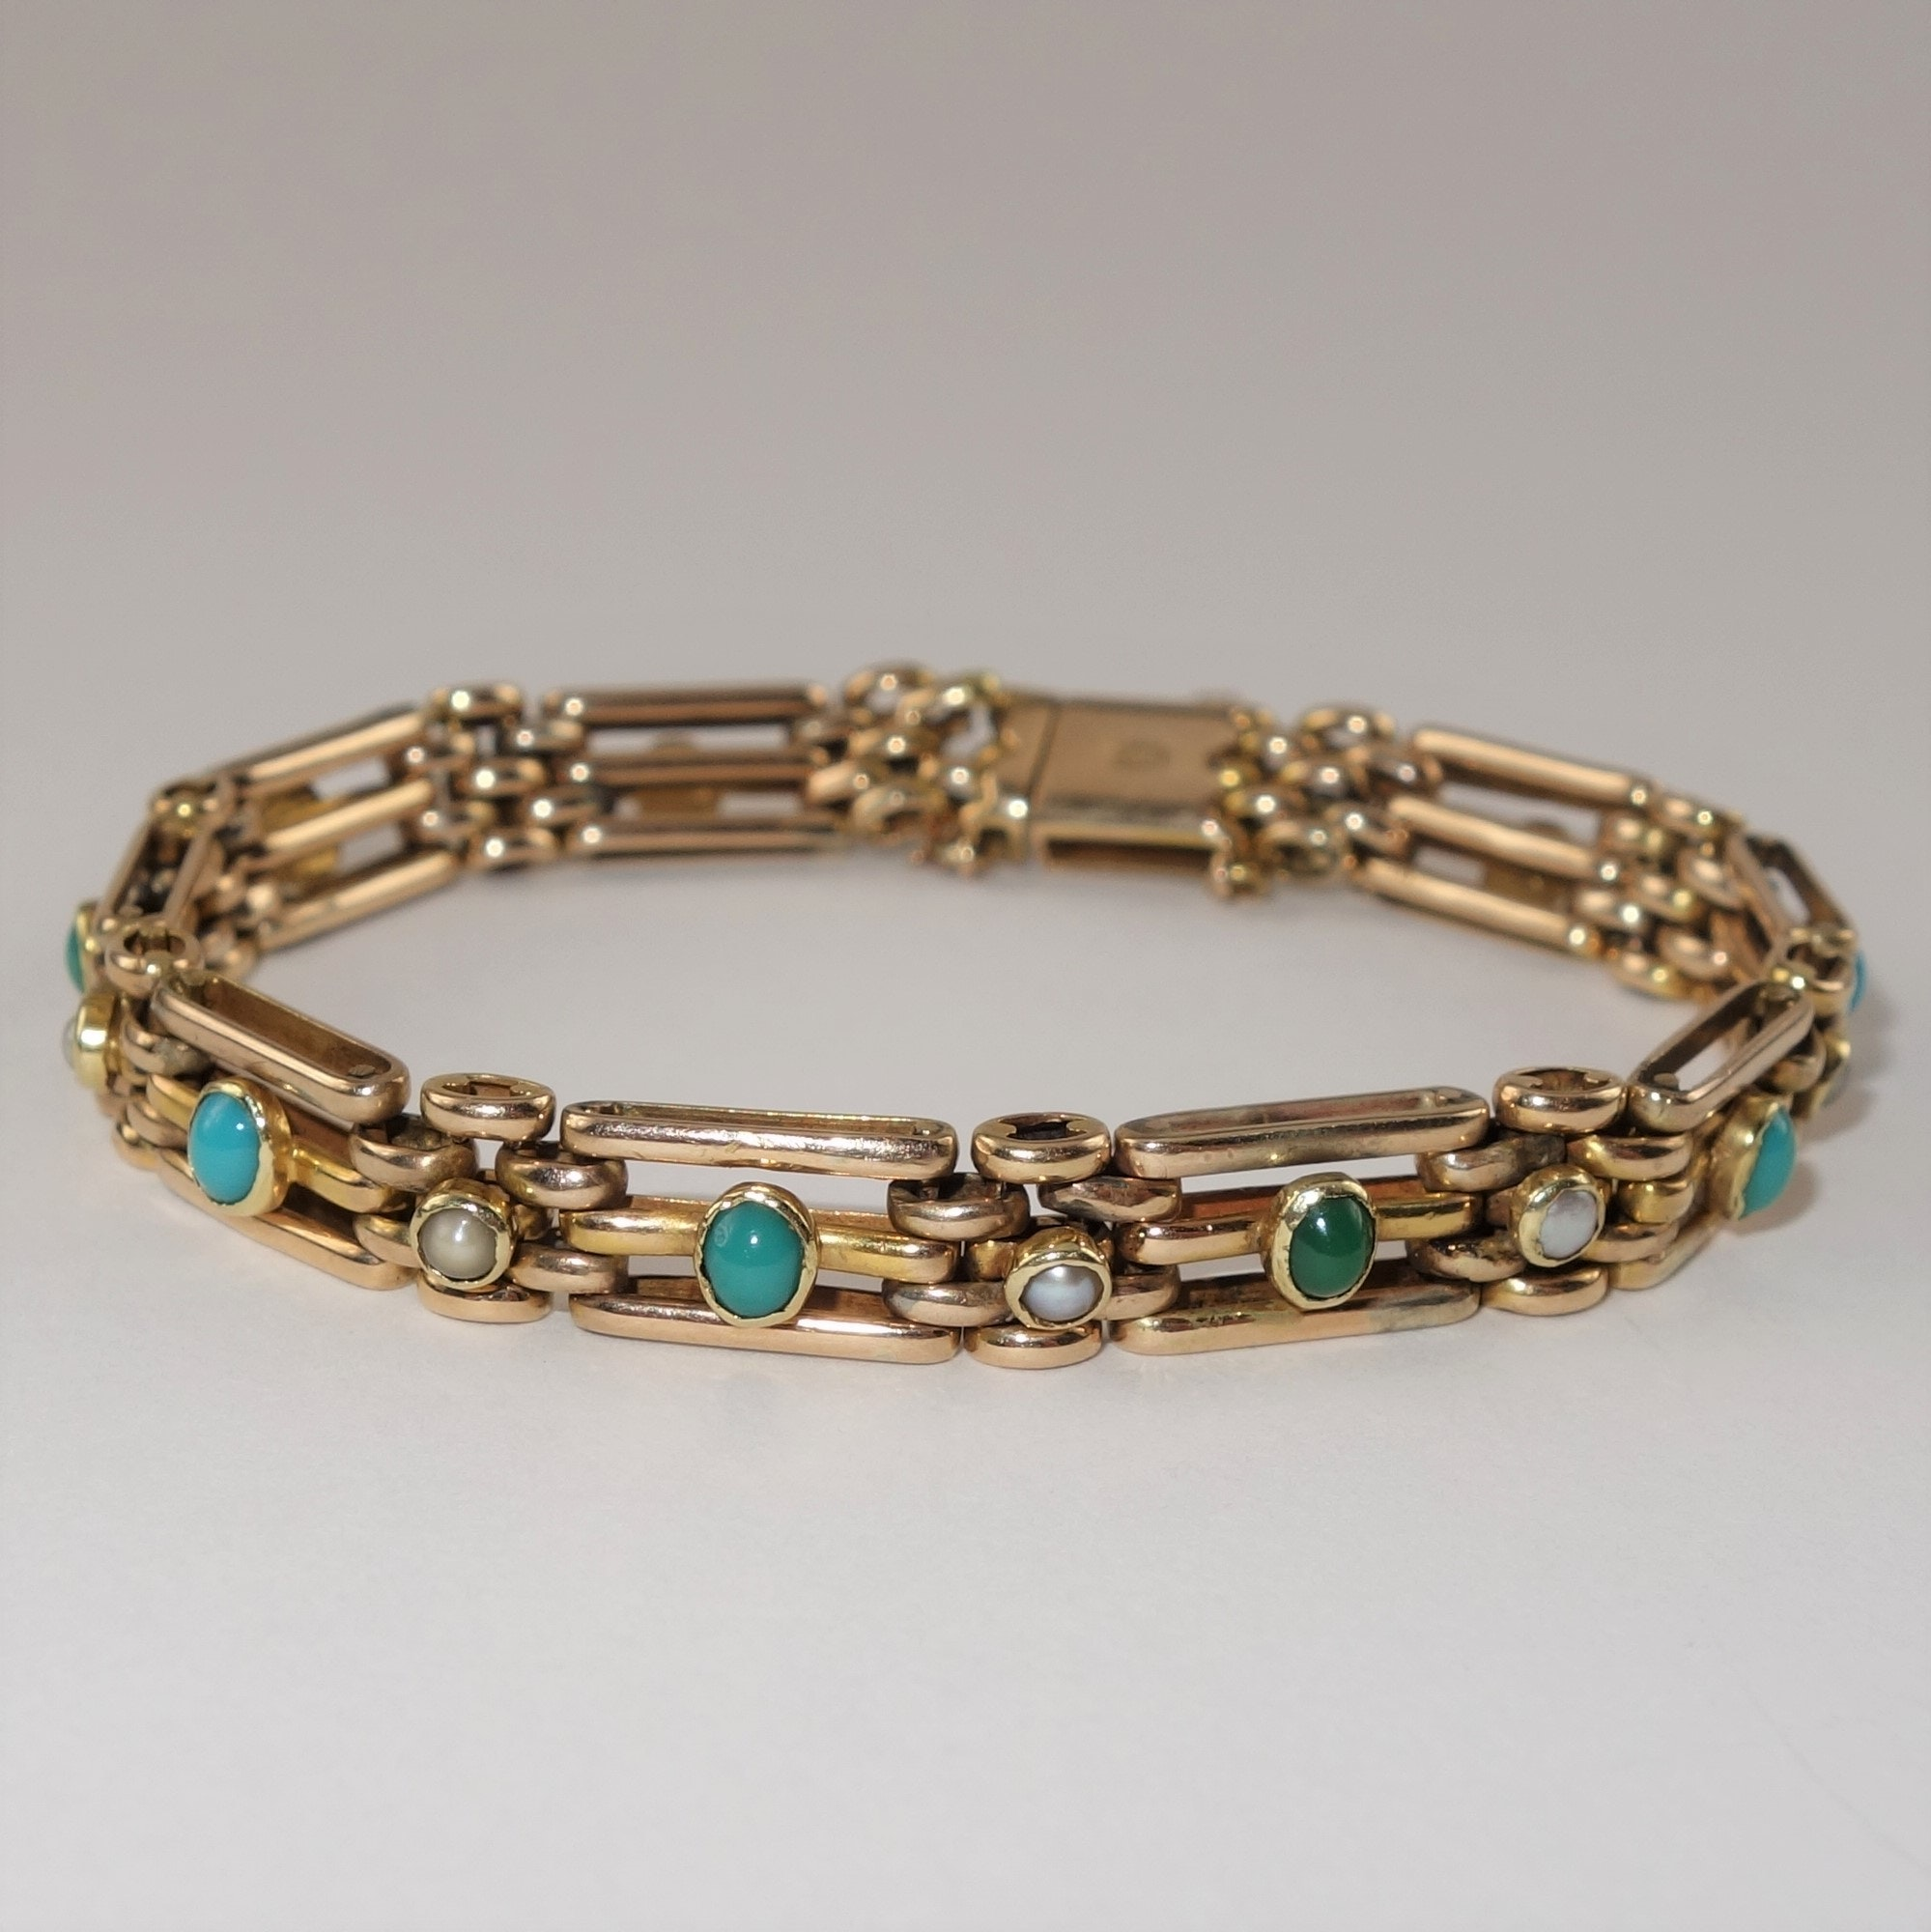 14K Yellow Gold Turquoise and Pearl Bracelet